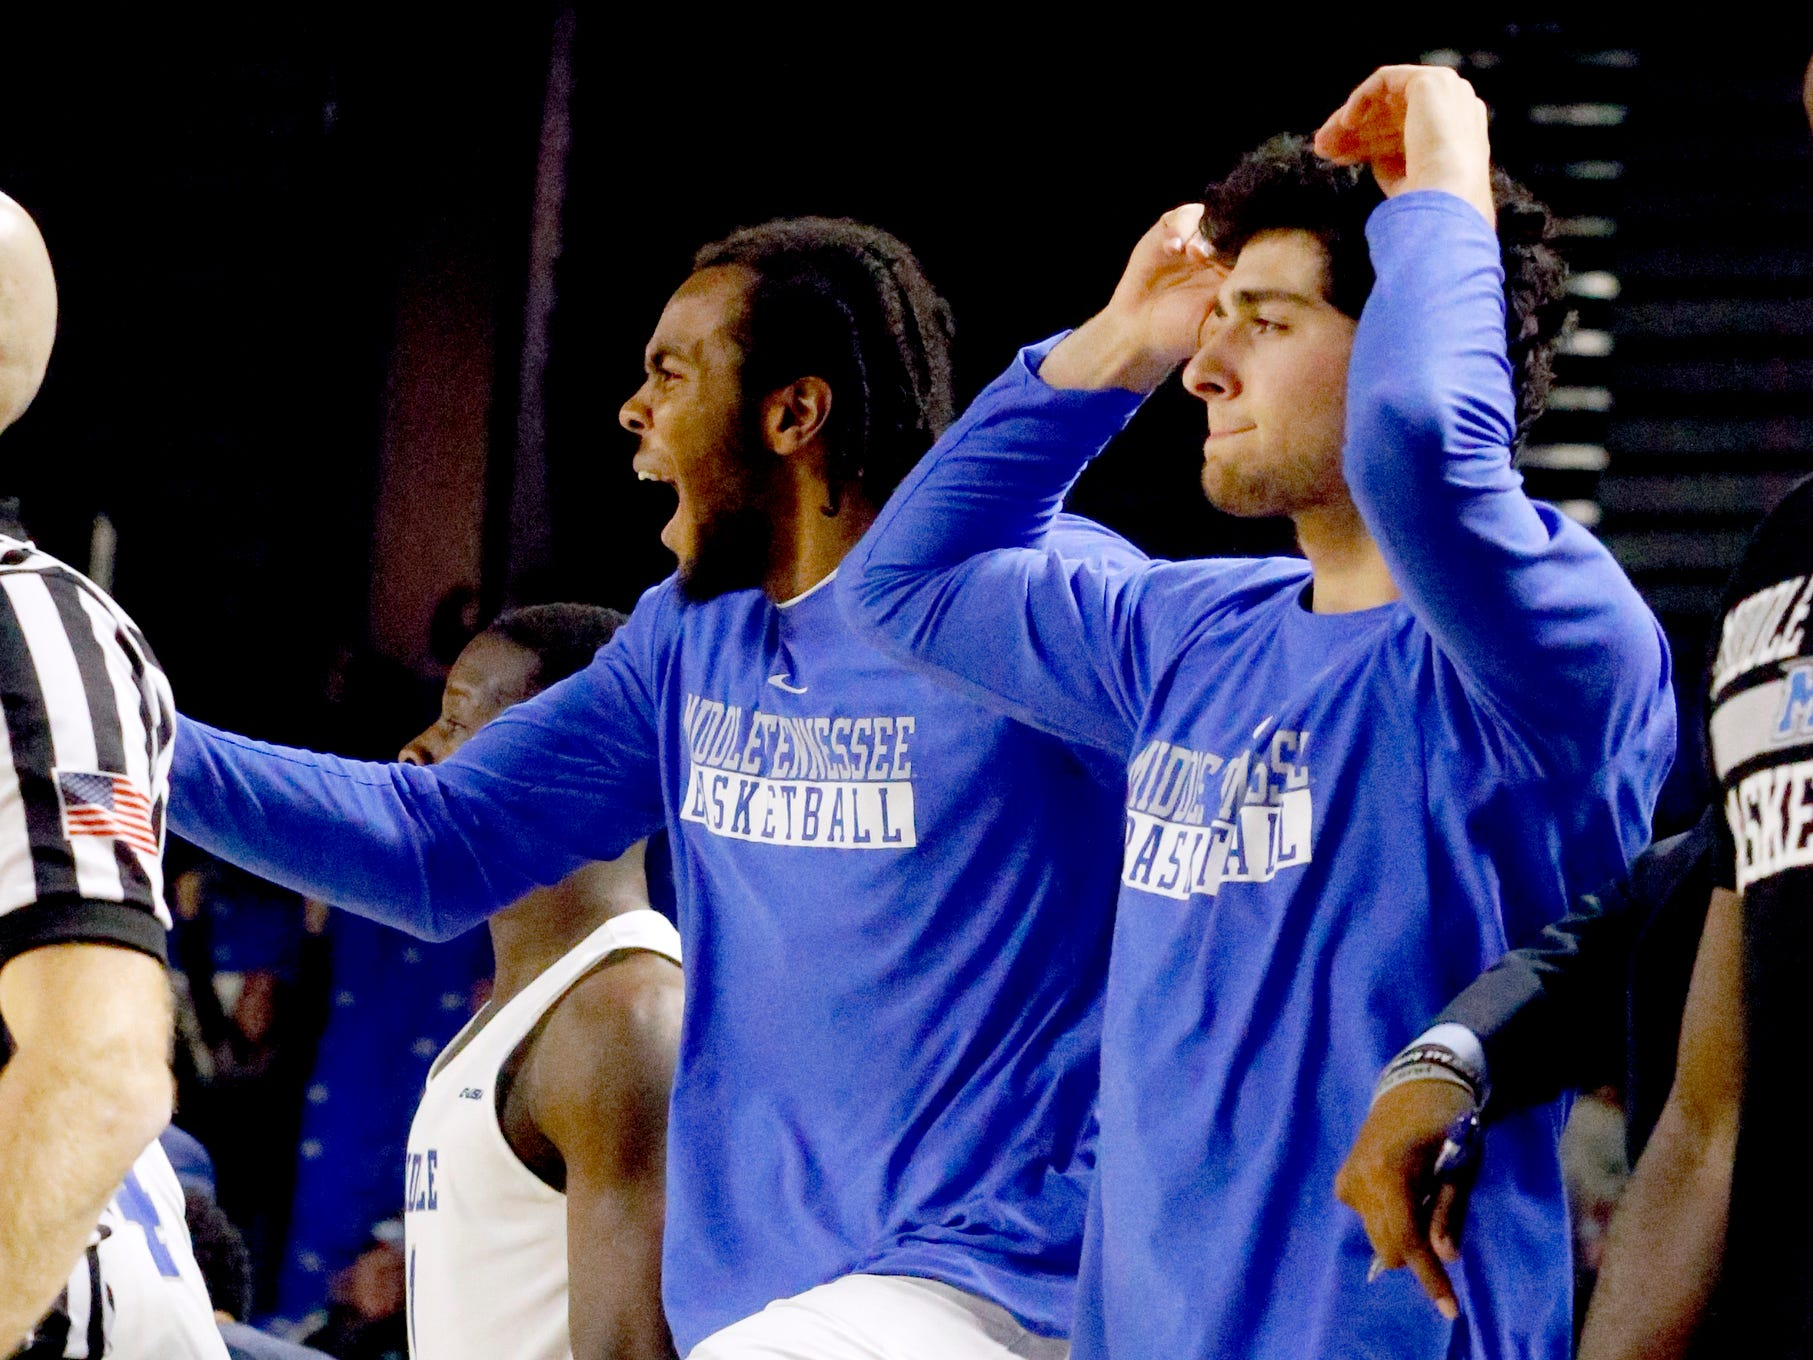 MTSU forward TJ Massenburg (15) and MTSU guard Chase Miller (14) celebrate MTSU guard Donovan Sims (3) making a three point basket against UAB late in the second half on Wednesday, Jan. 30, 2019.